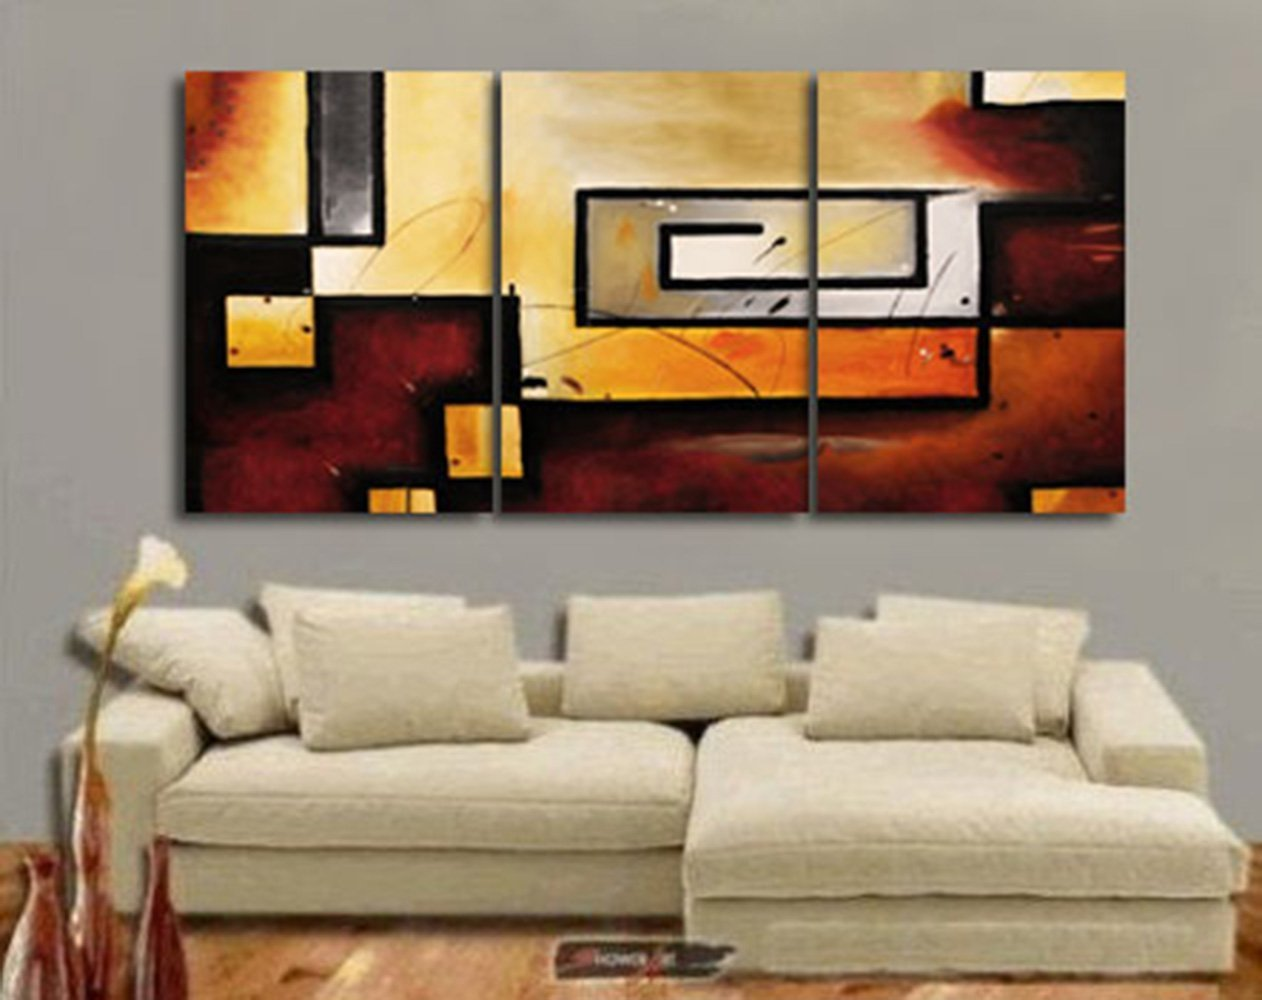 amazon com art wall abstract modern gallery wrapped canvas art by amazon com art wall abstract modern gallery wrapped canvas art by jim morana 36 by 54 inch oil paintings posters prints